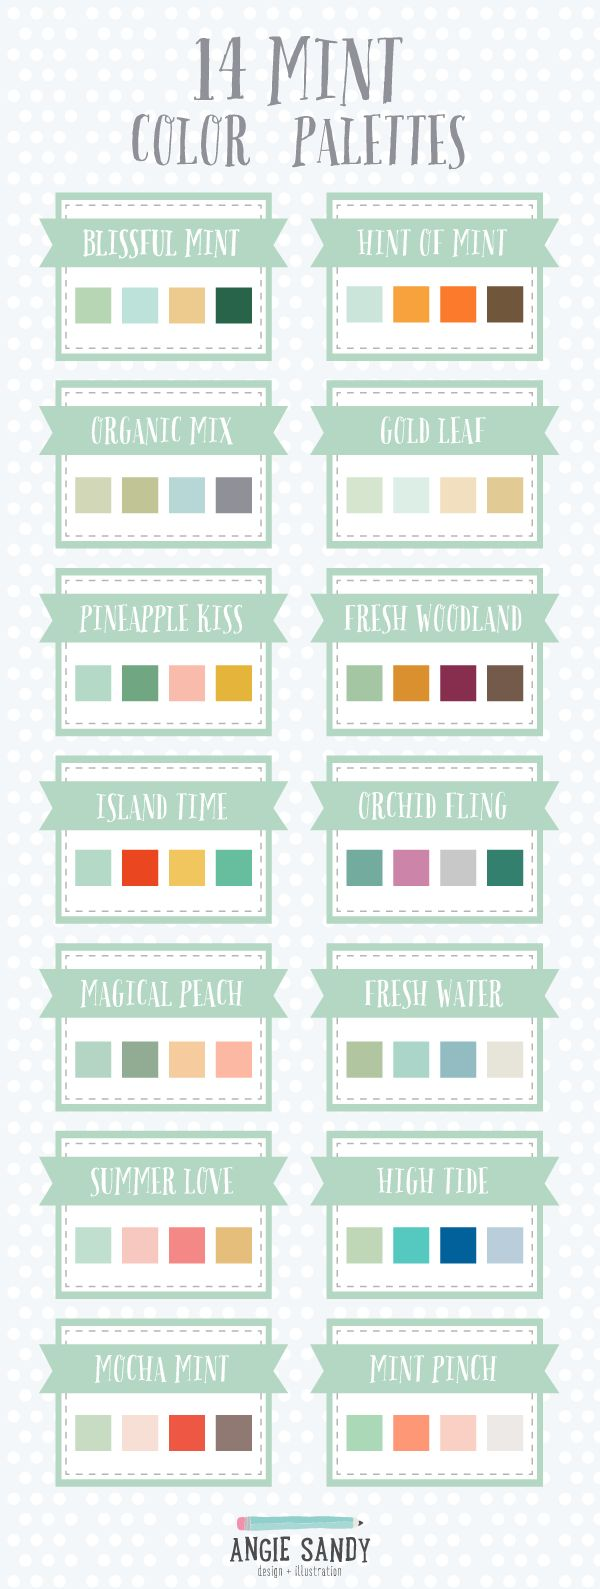 14 Mint Color Palettes | Angie Sandy Design + Illustration #colorpalette #mint #color  Inspirações